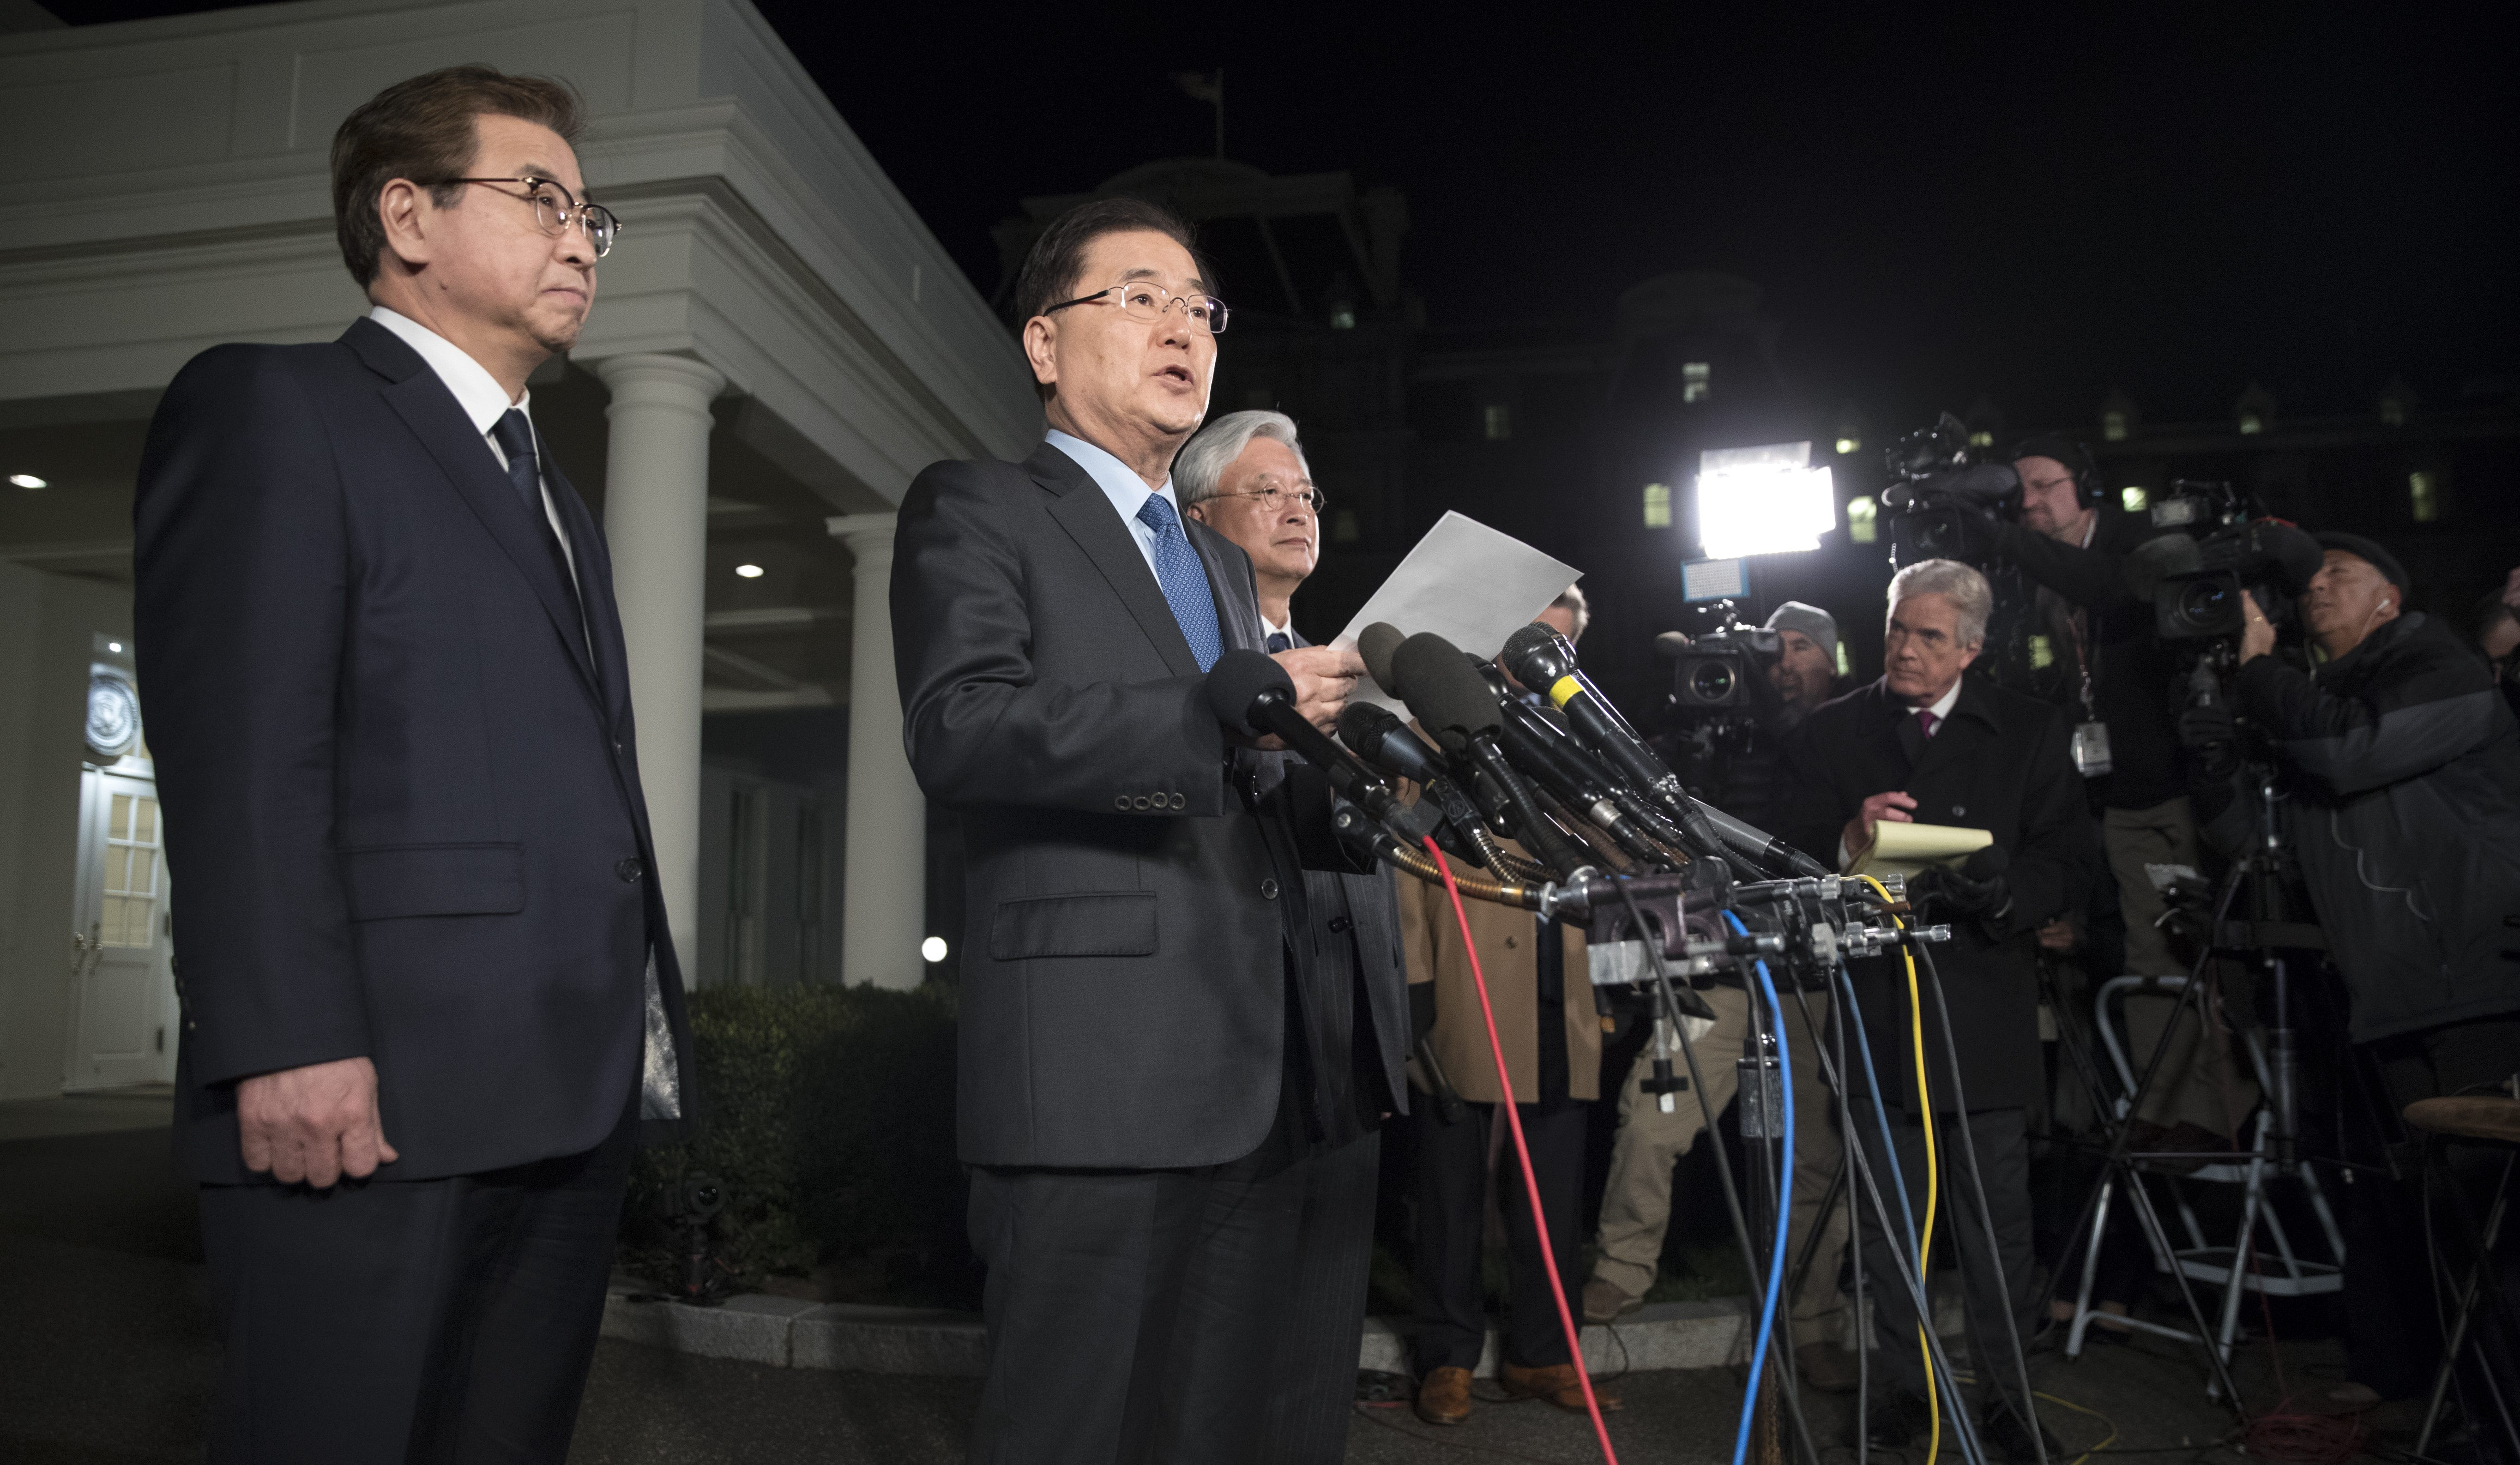 South Korea announcing the latest developments on North Korea in the White House.